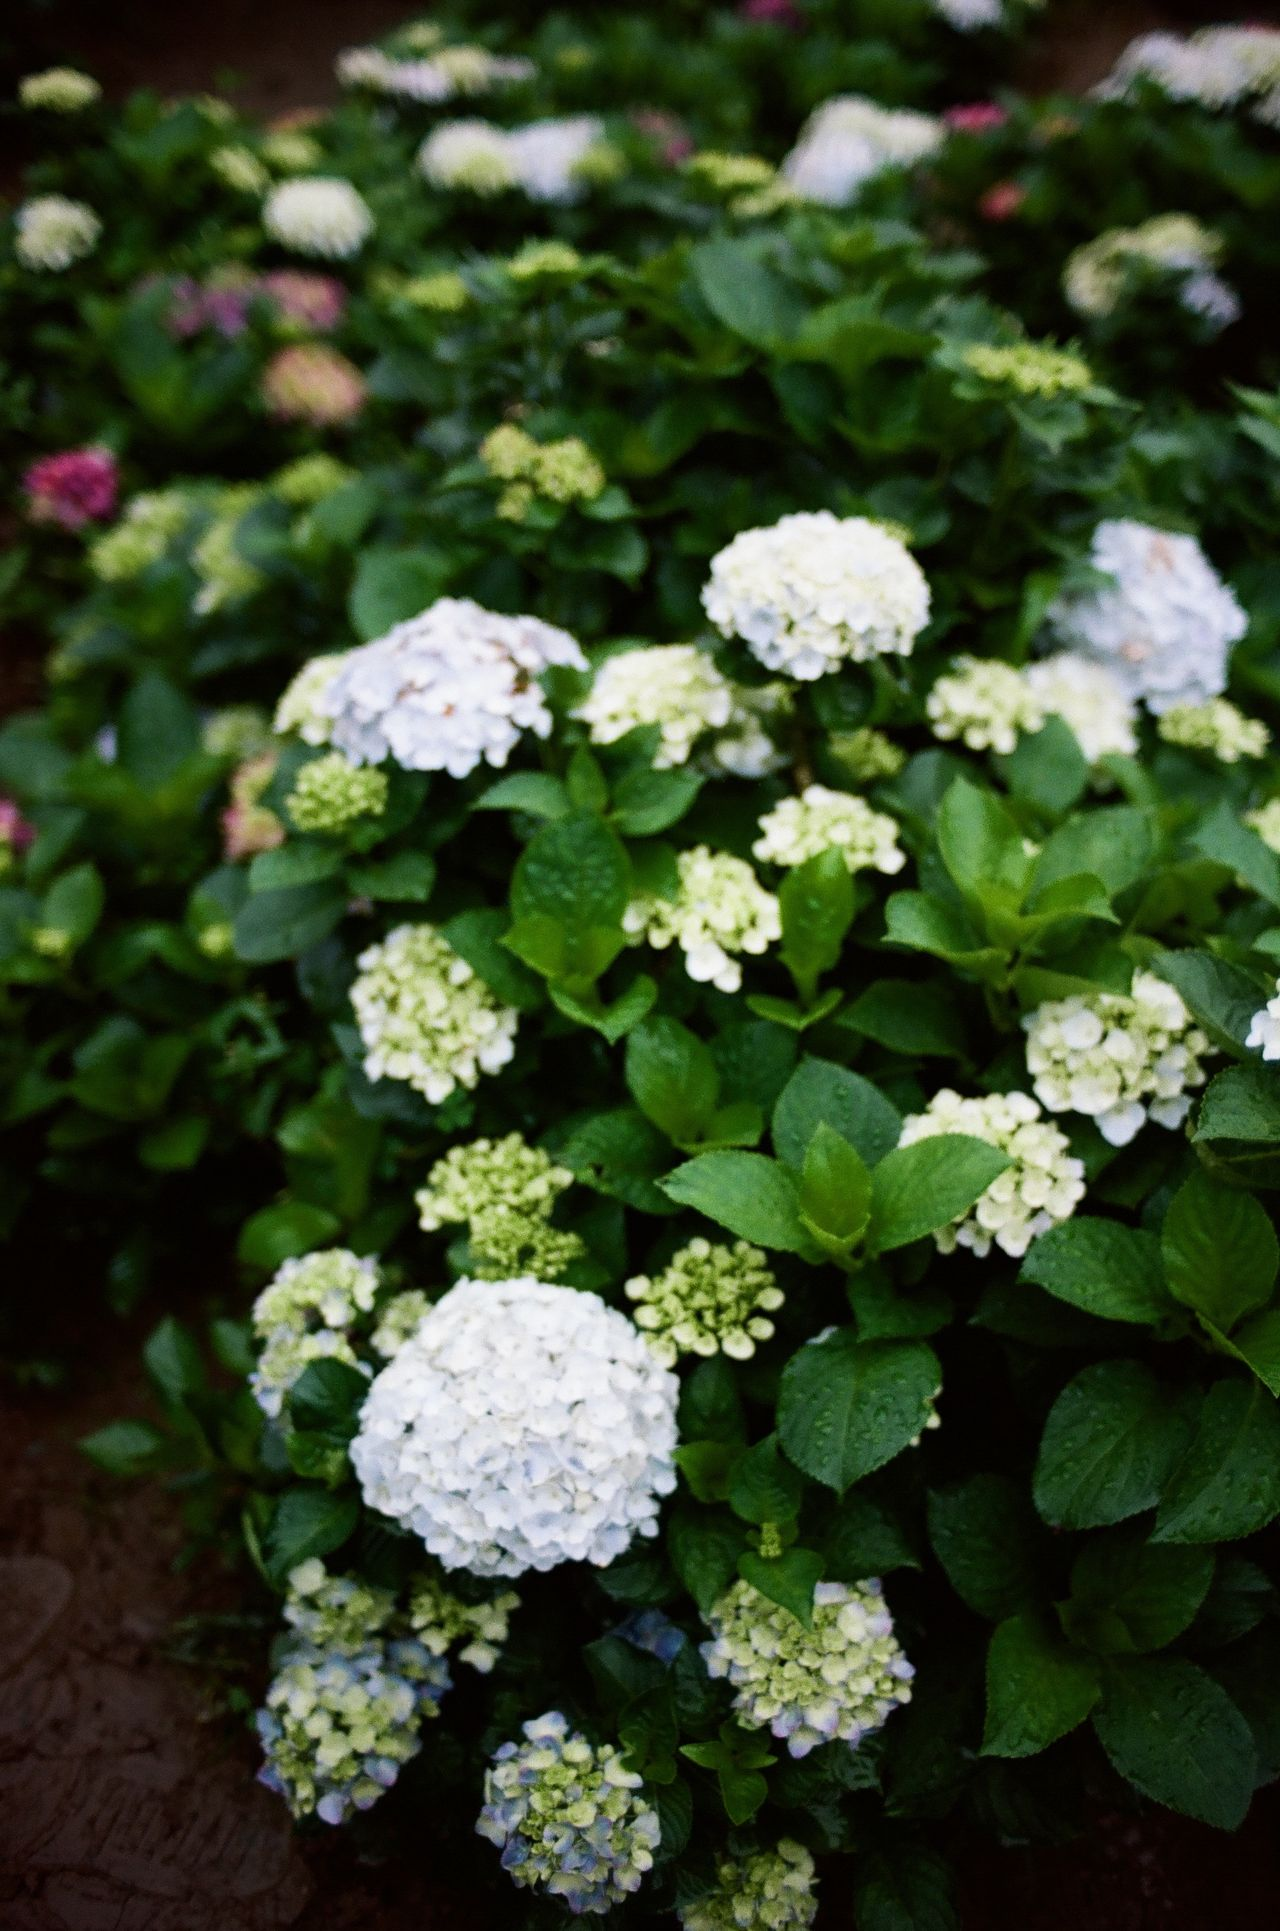 Beauty In Nature Blooming Close-up Day Film Photography Filmisnotdead Flower Flower Head Fragility Freshness Green Color Growth Hydrangea Leaf Nature No People Outdoors Plant